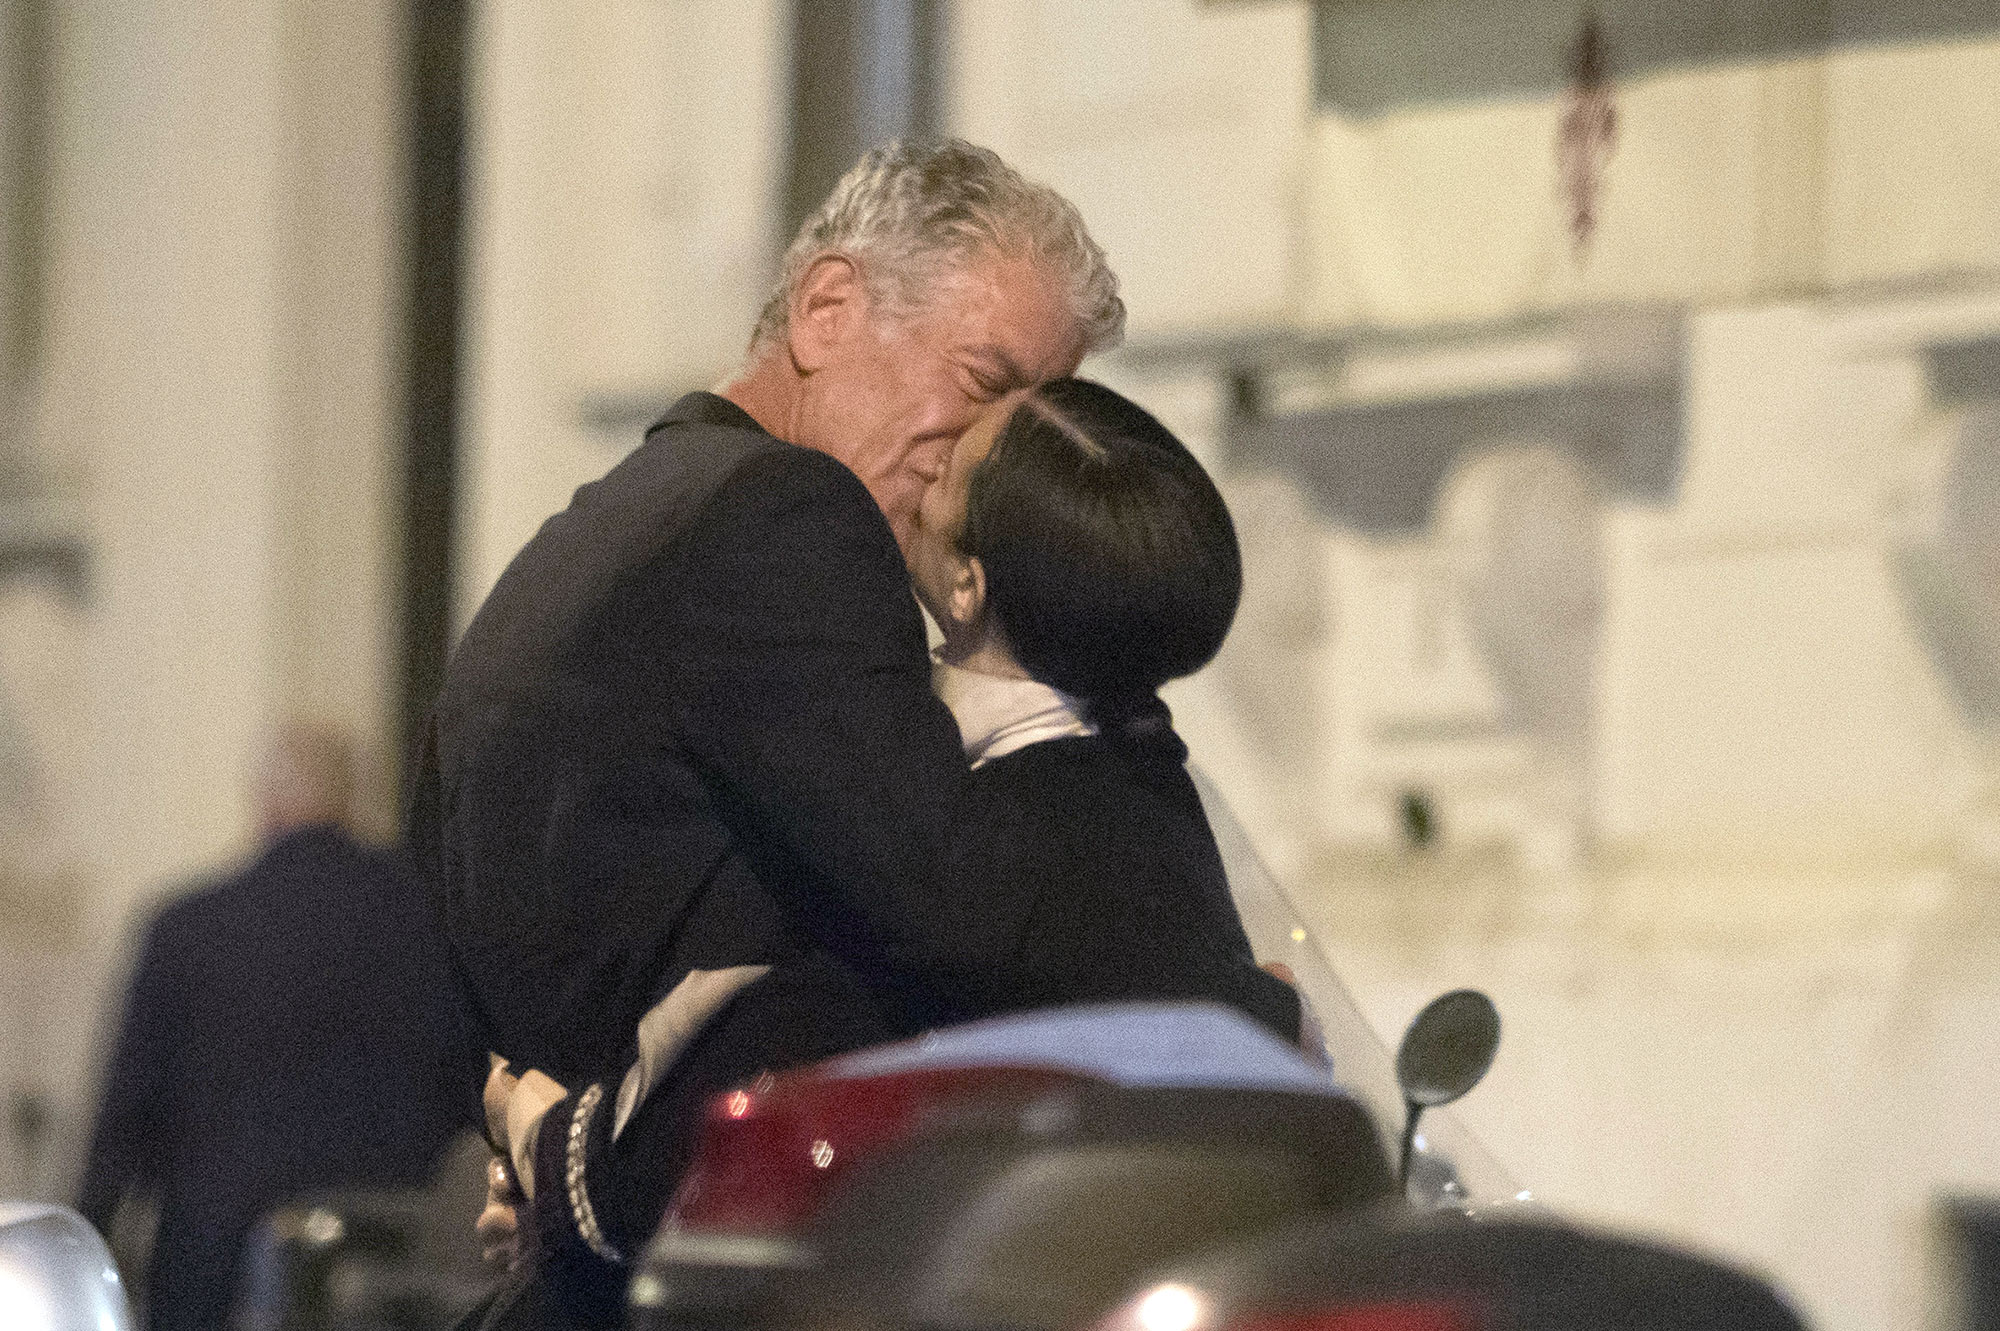 Celebrity Chef Anthony Bourdain enjoys a romantic dinner with his new girlfriend Asia Argento